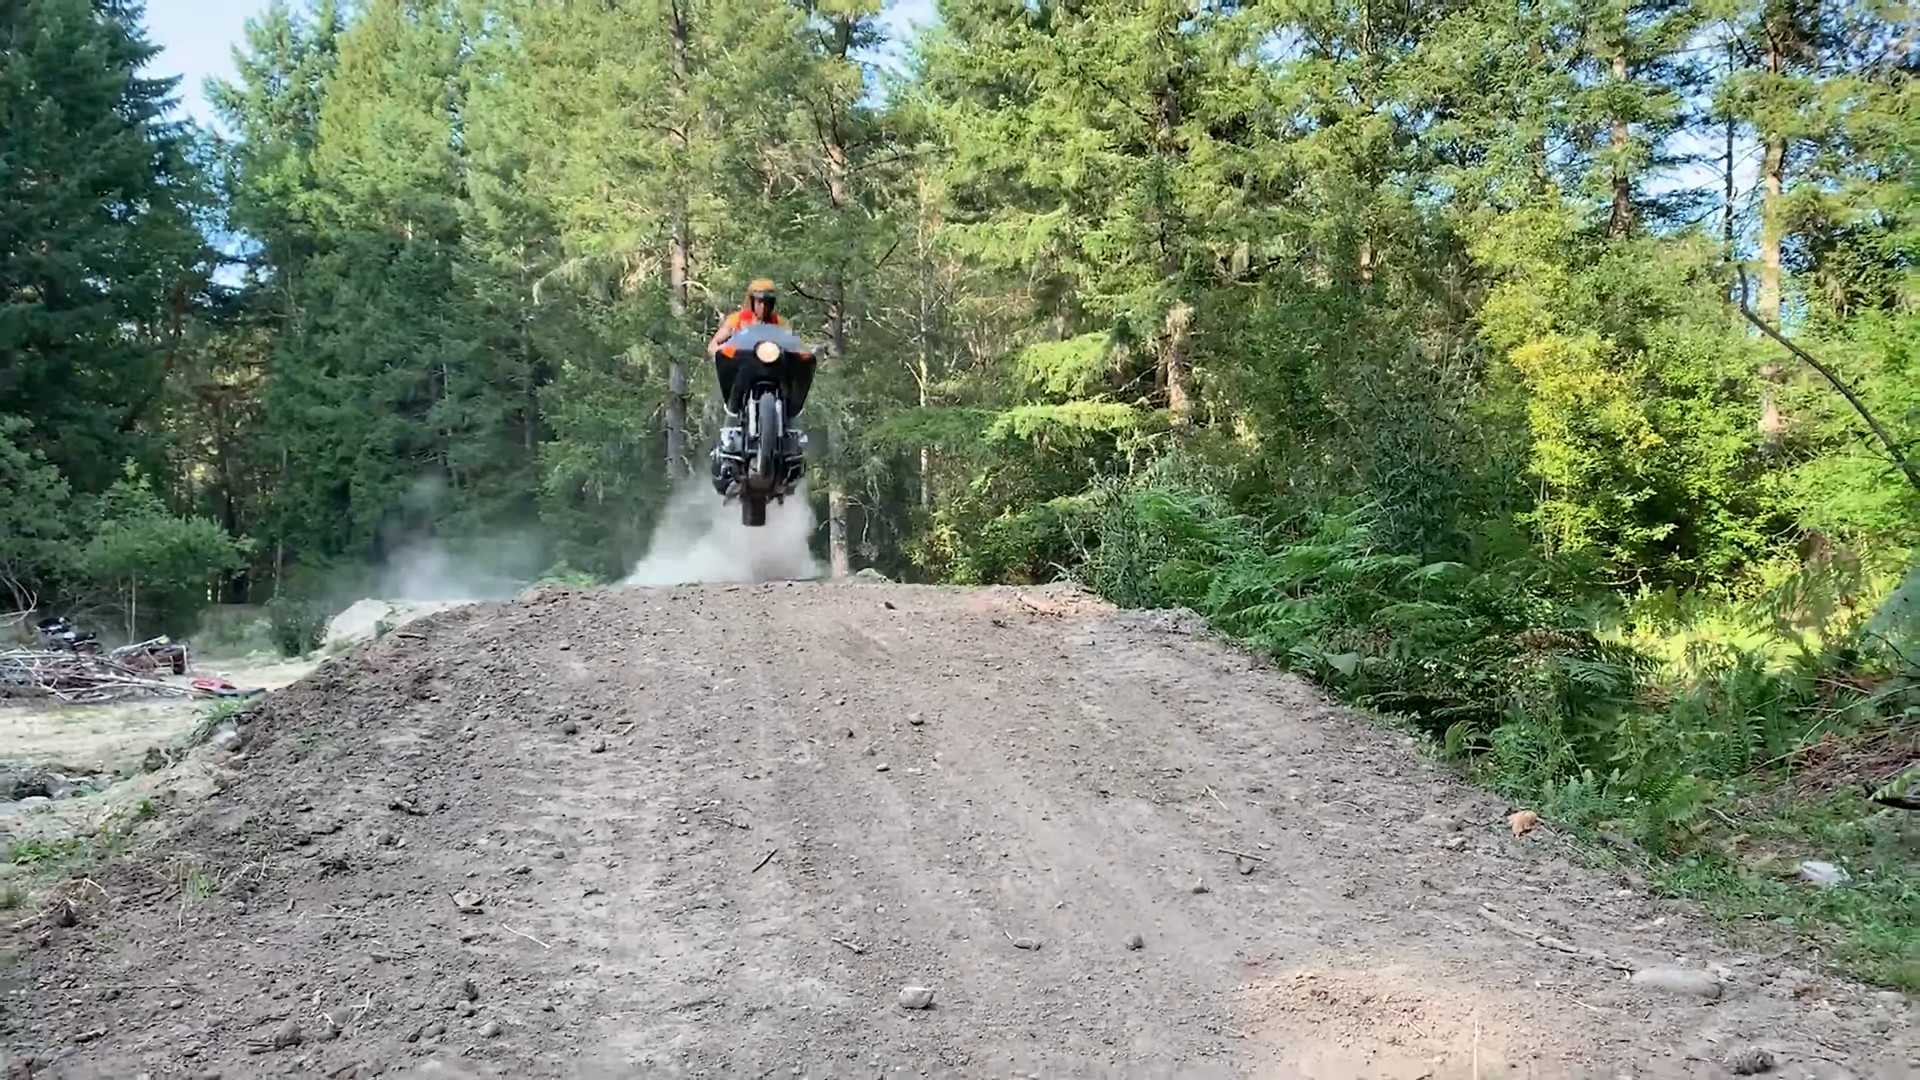 Gold Wing Motocross With Dos Honduros Is Totally Rad